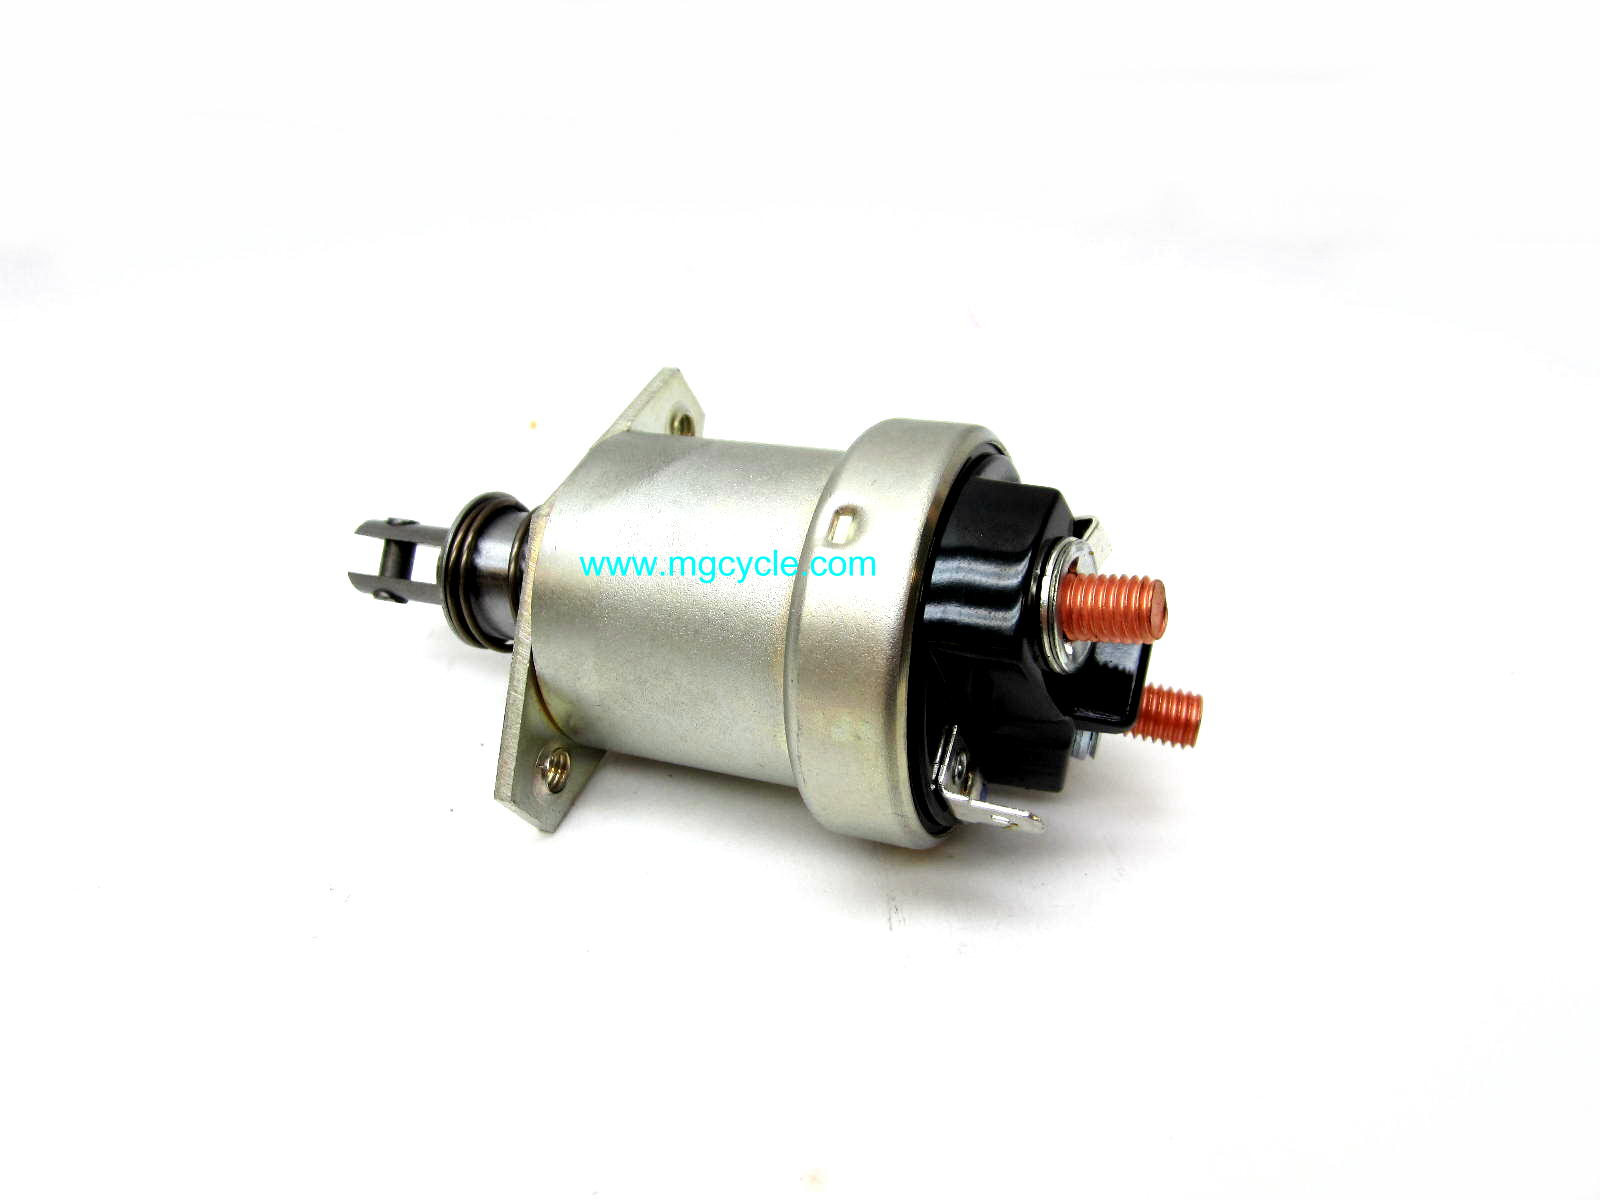 Starter solenoid modified to fit Marelli starters